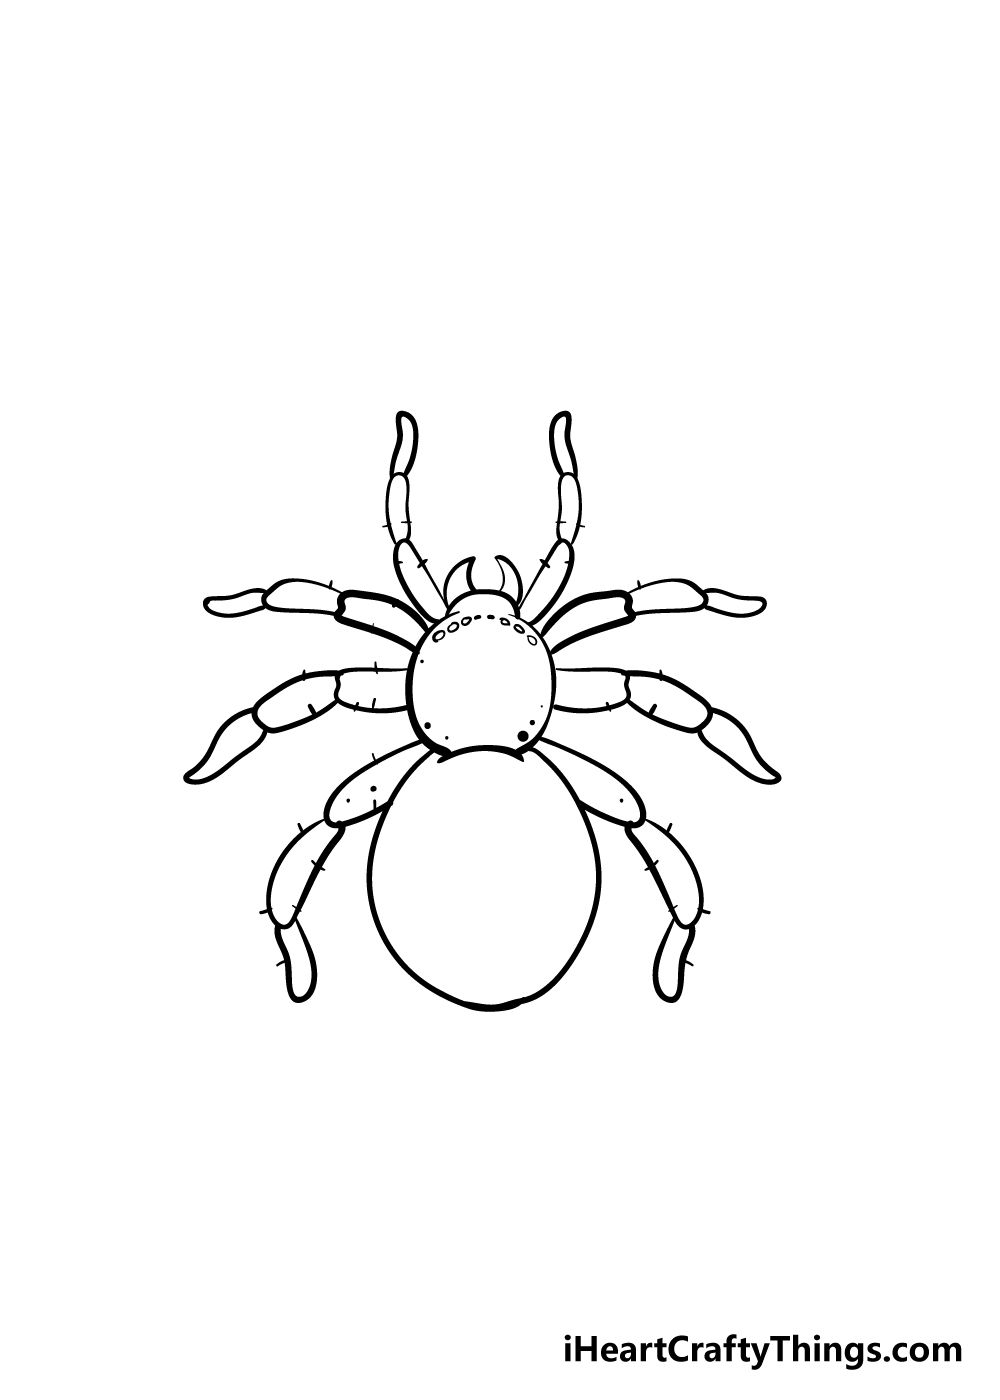 spider drawing step 7